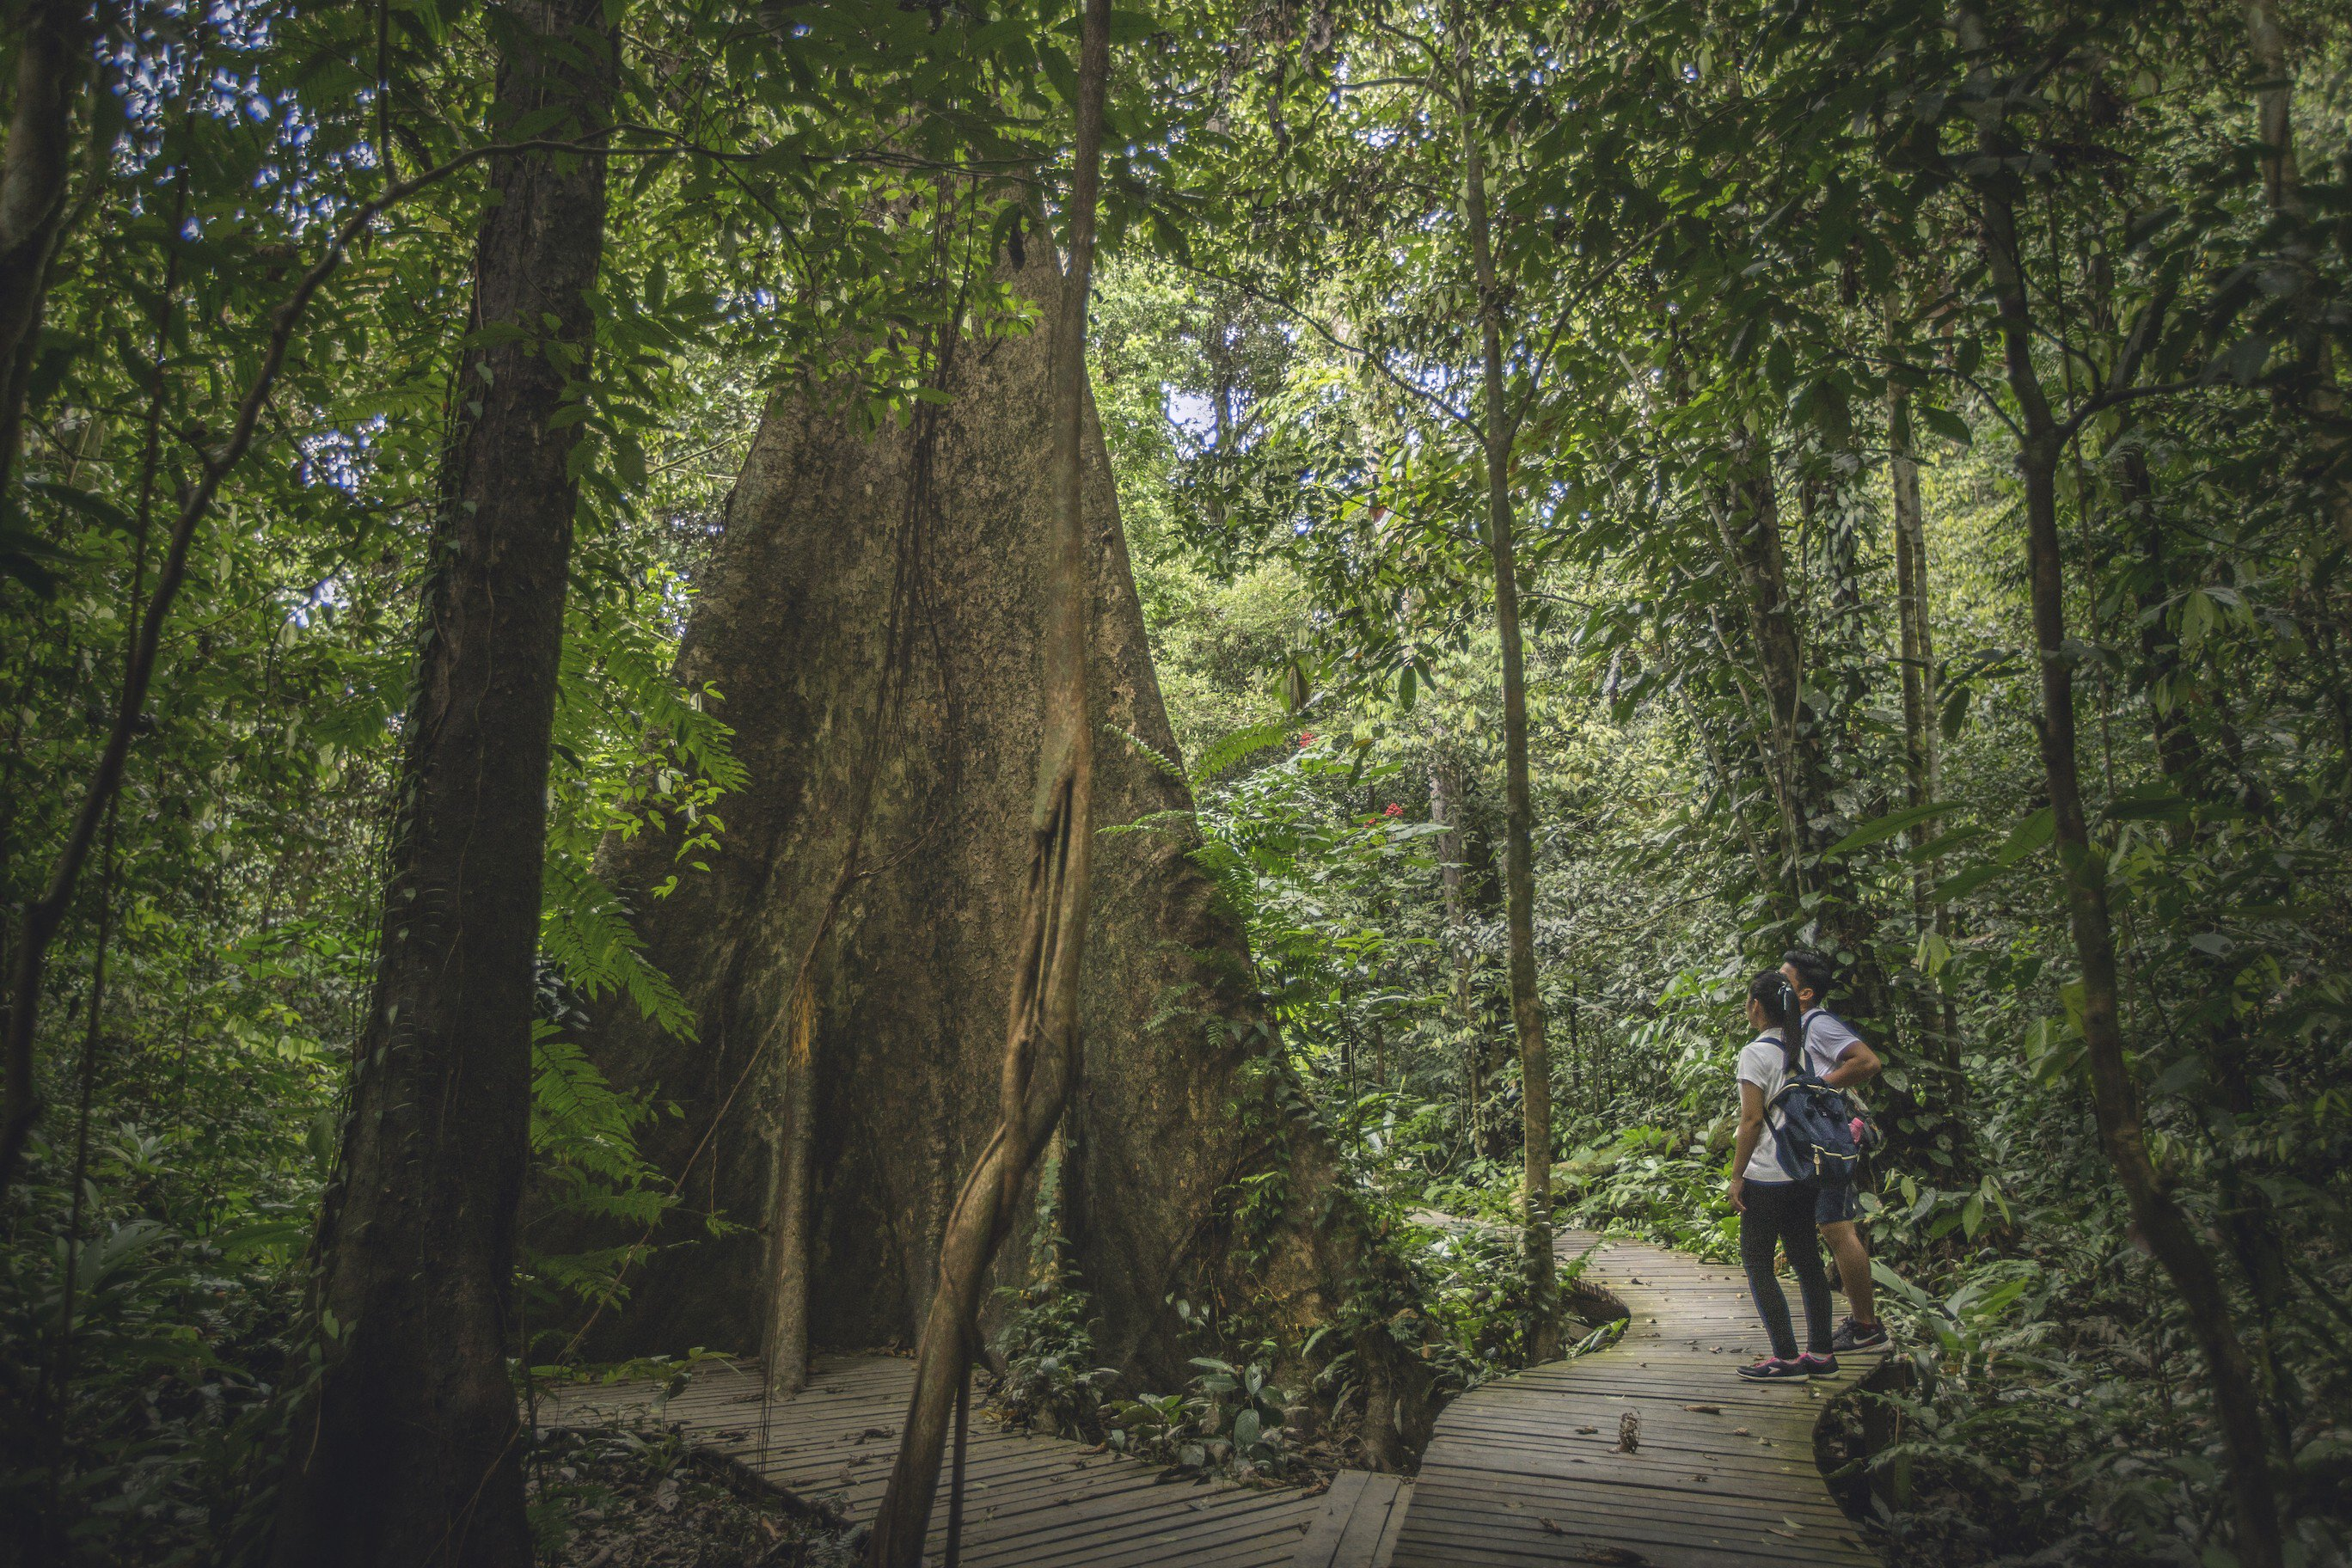 Nature therapy, such as forest bathing – mindfully walking through nature – can help to reprogram our overstimulated minds and bodies